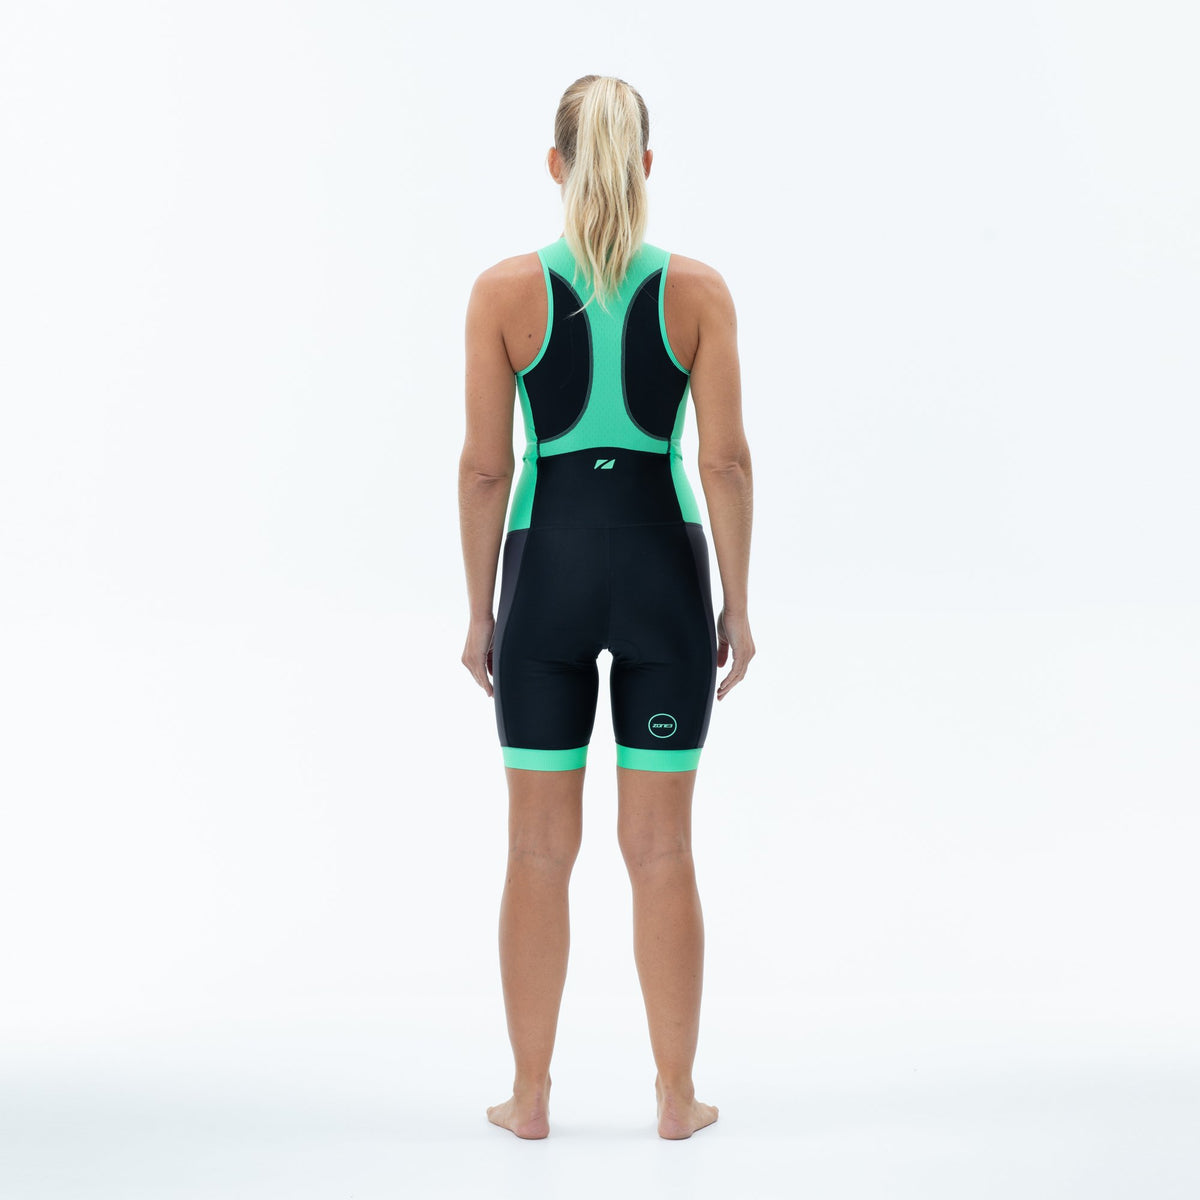 Women's Aquaflo Plus Trisuit